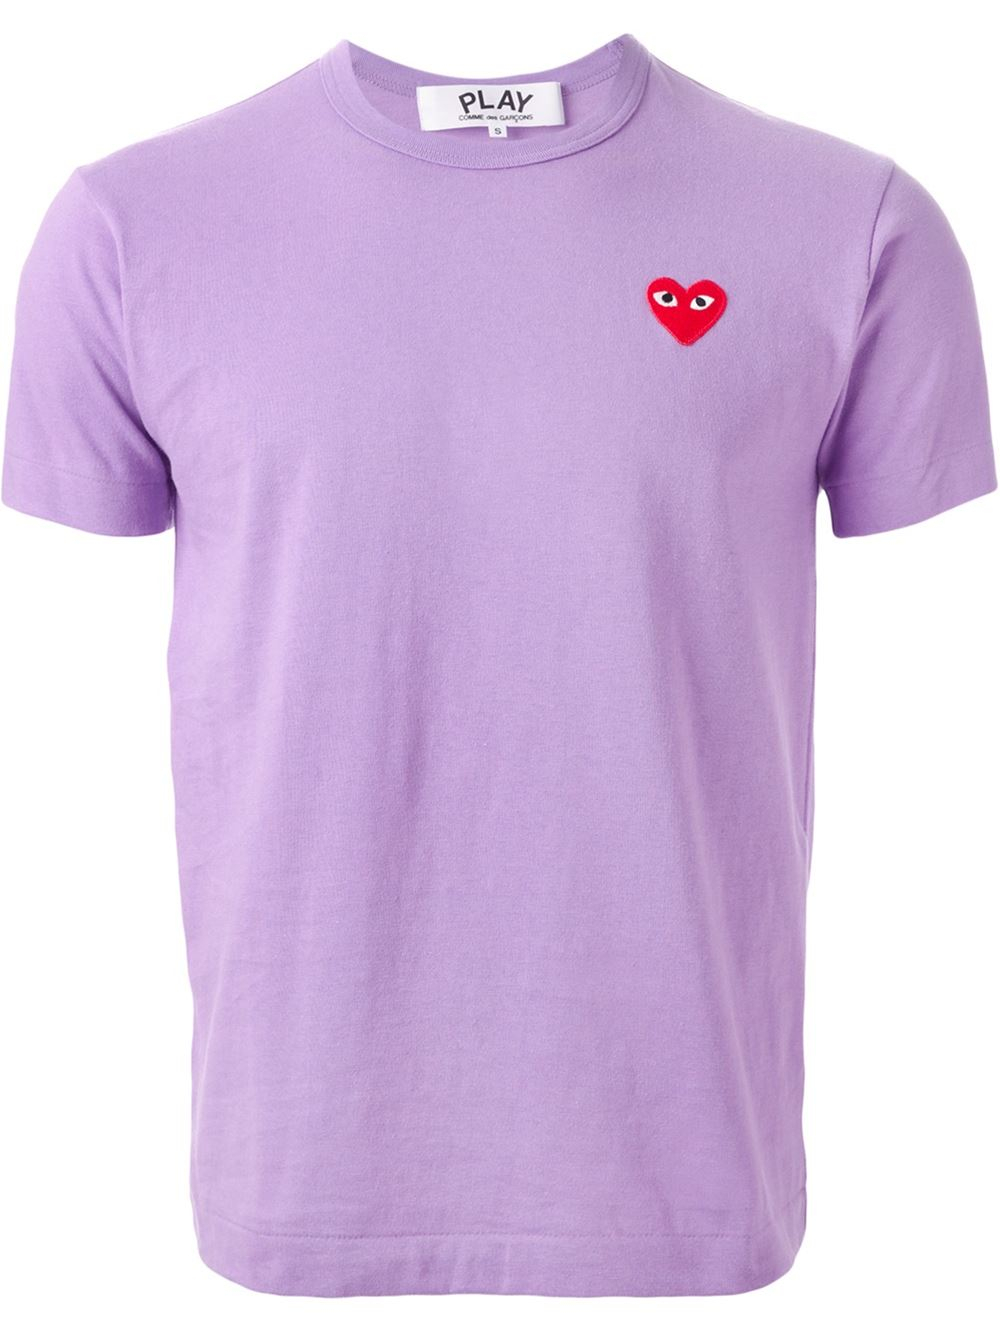 Play comme des gar ons 39 play colour series 39 t shirt in for Commes des garcons play shirt